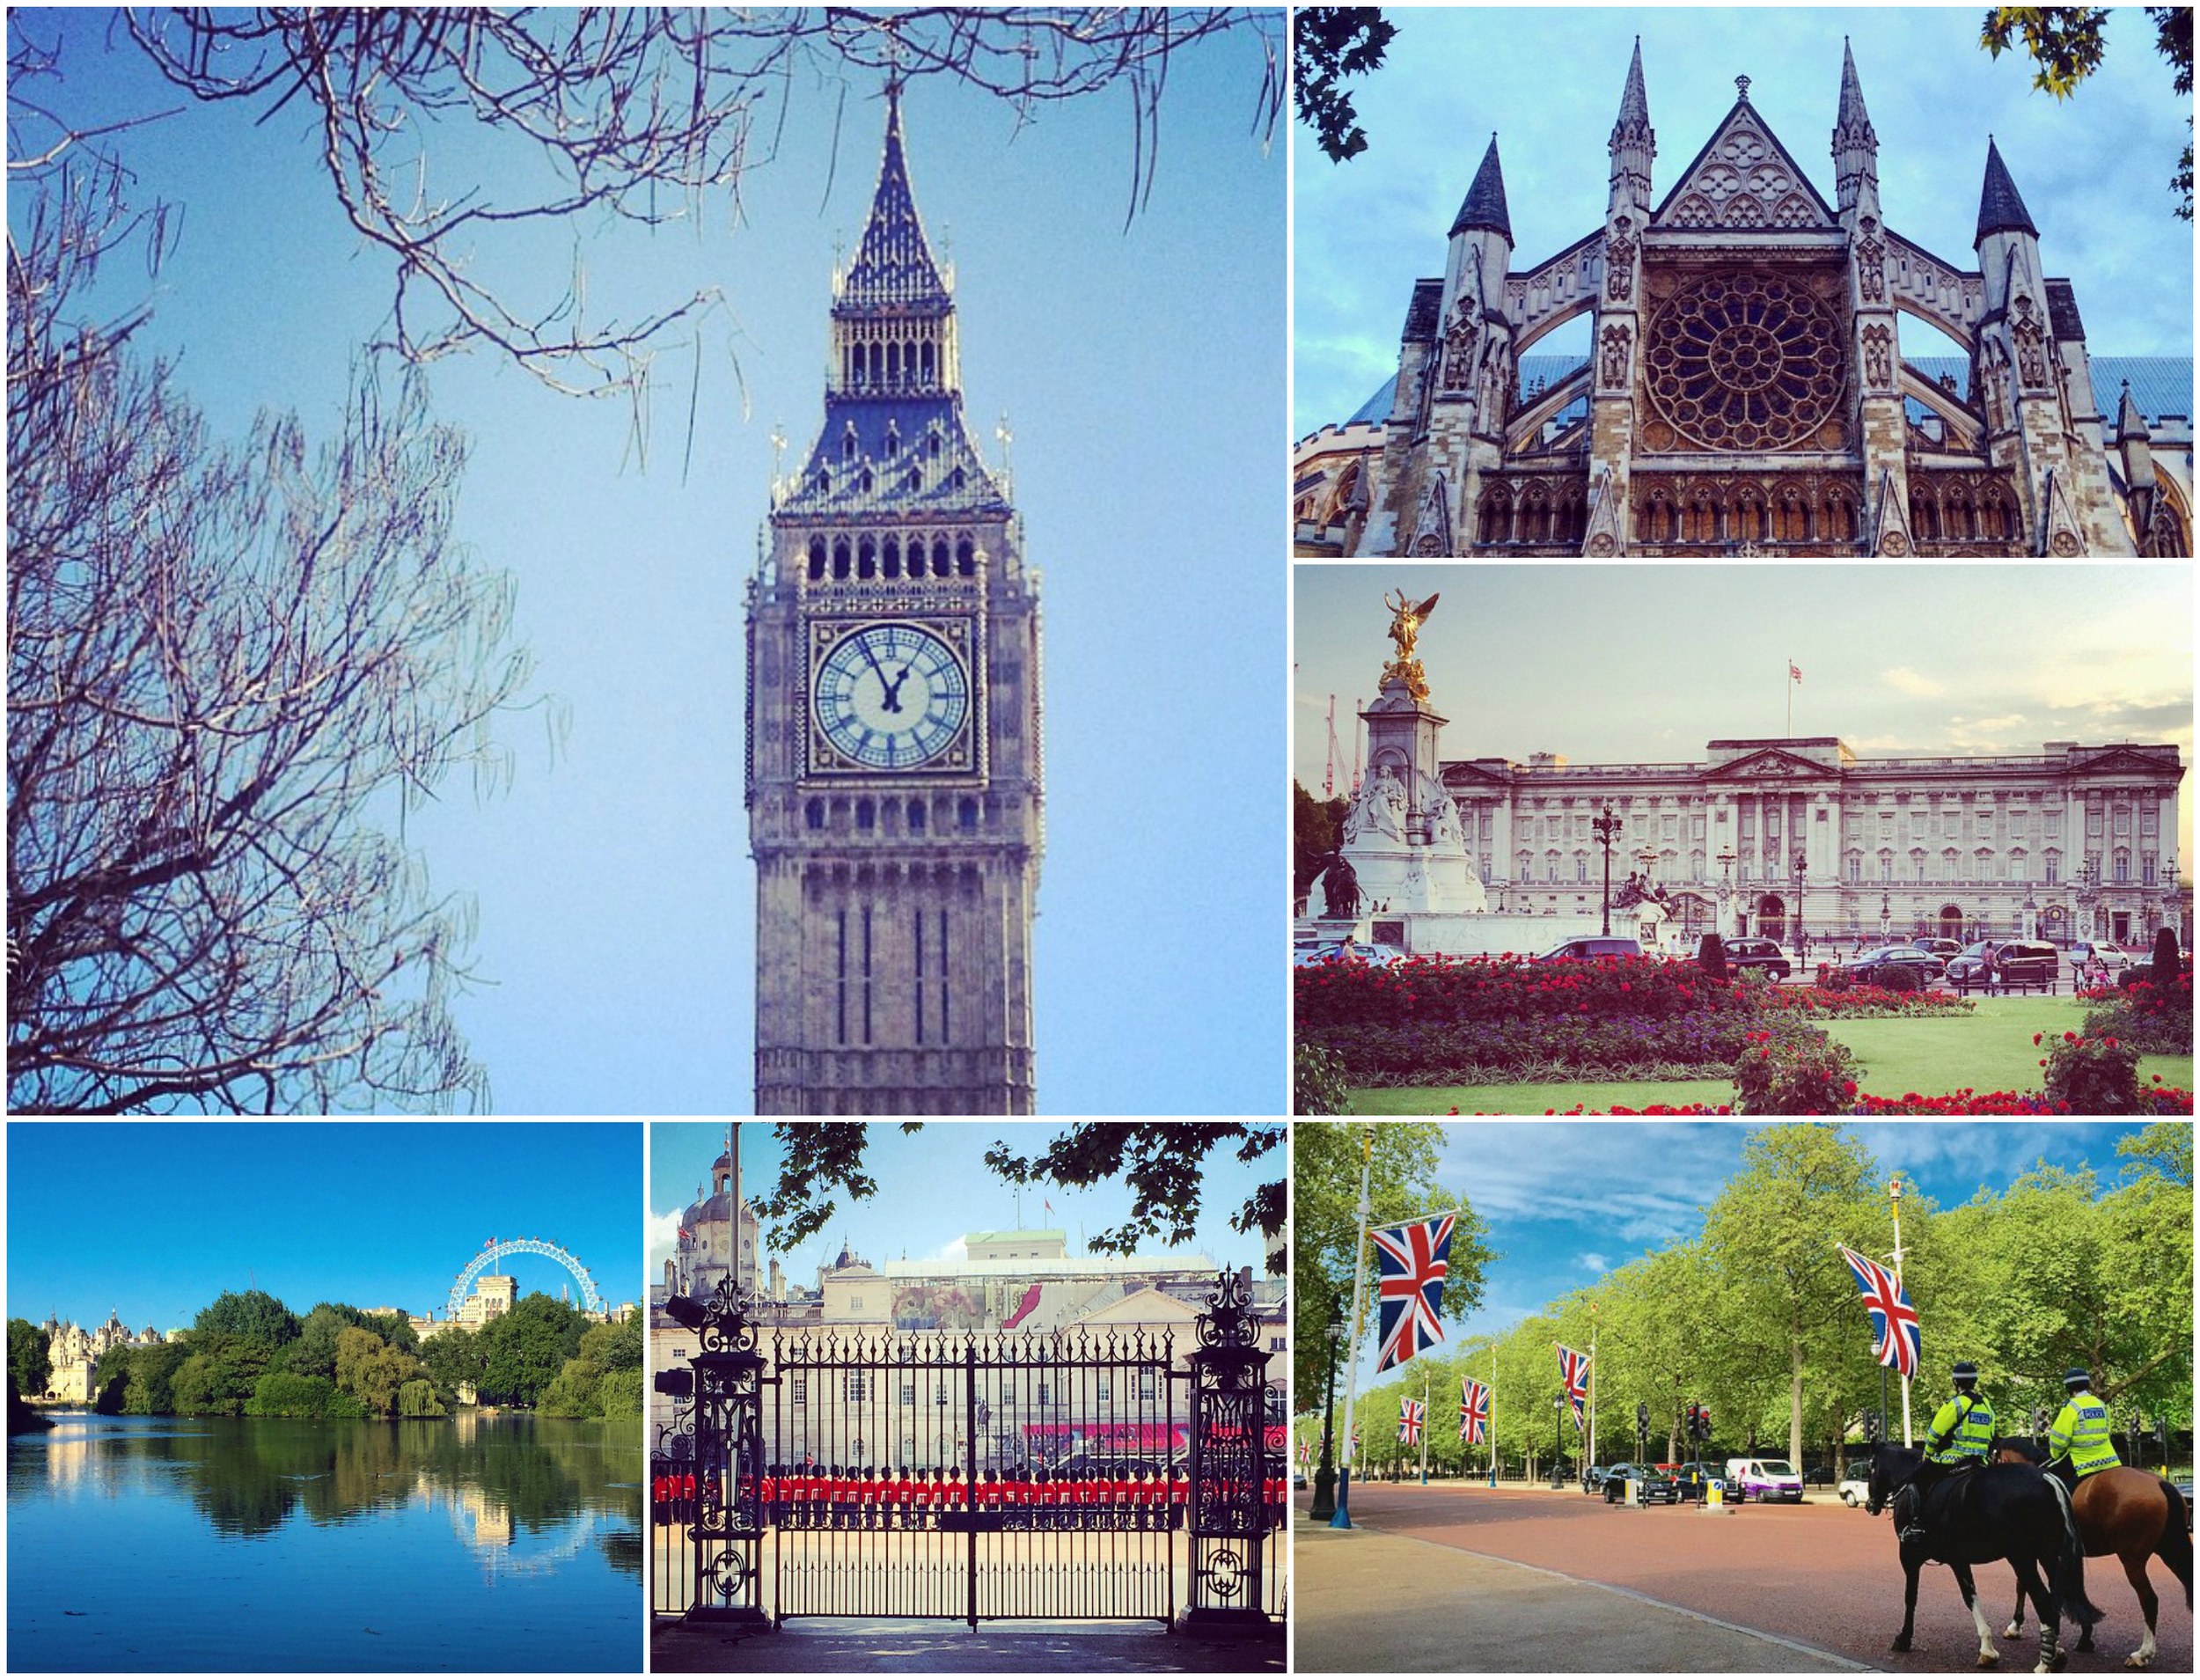 Big Ben, Buckingham Palace, Westminster Abbey and St James's Park are just some of the popular attractions within a short walk from Westminster tube station. (Images: Eileen Hsieh)